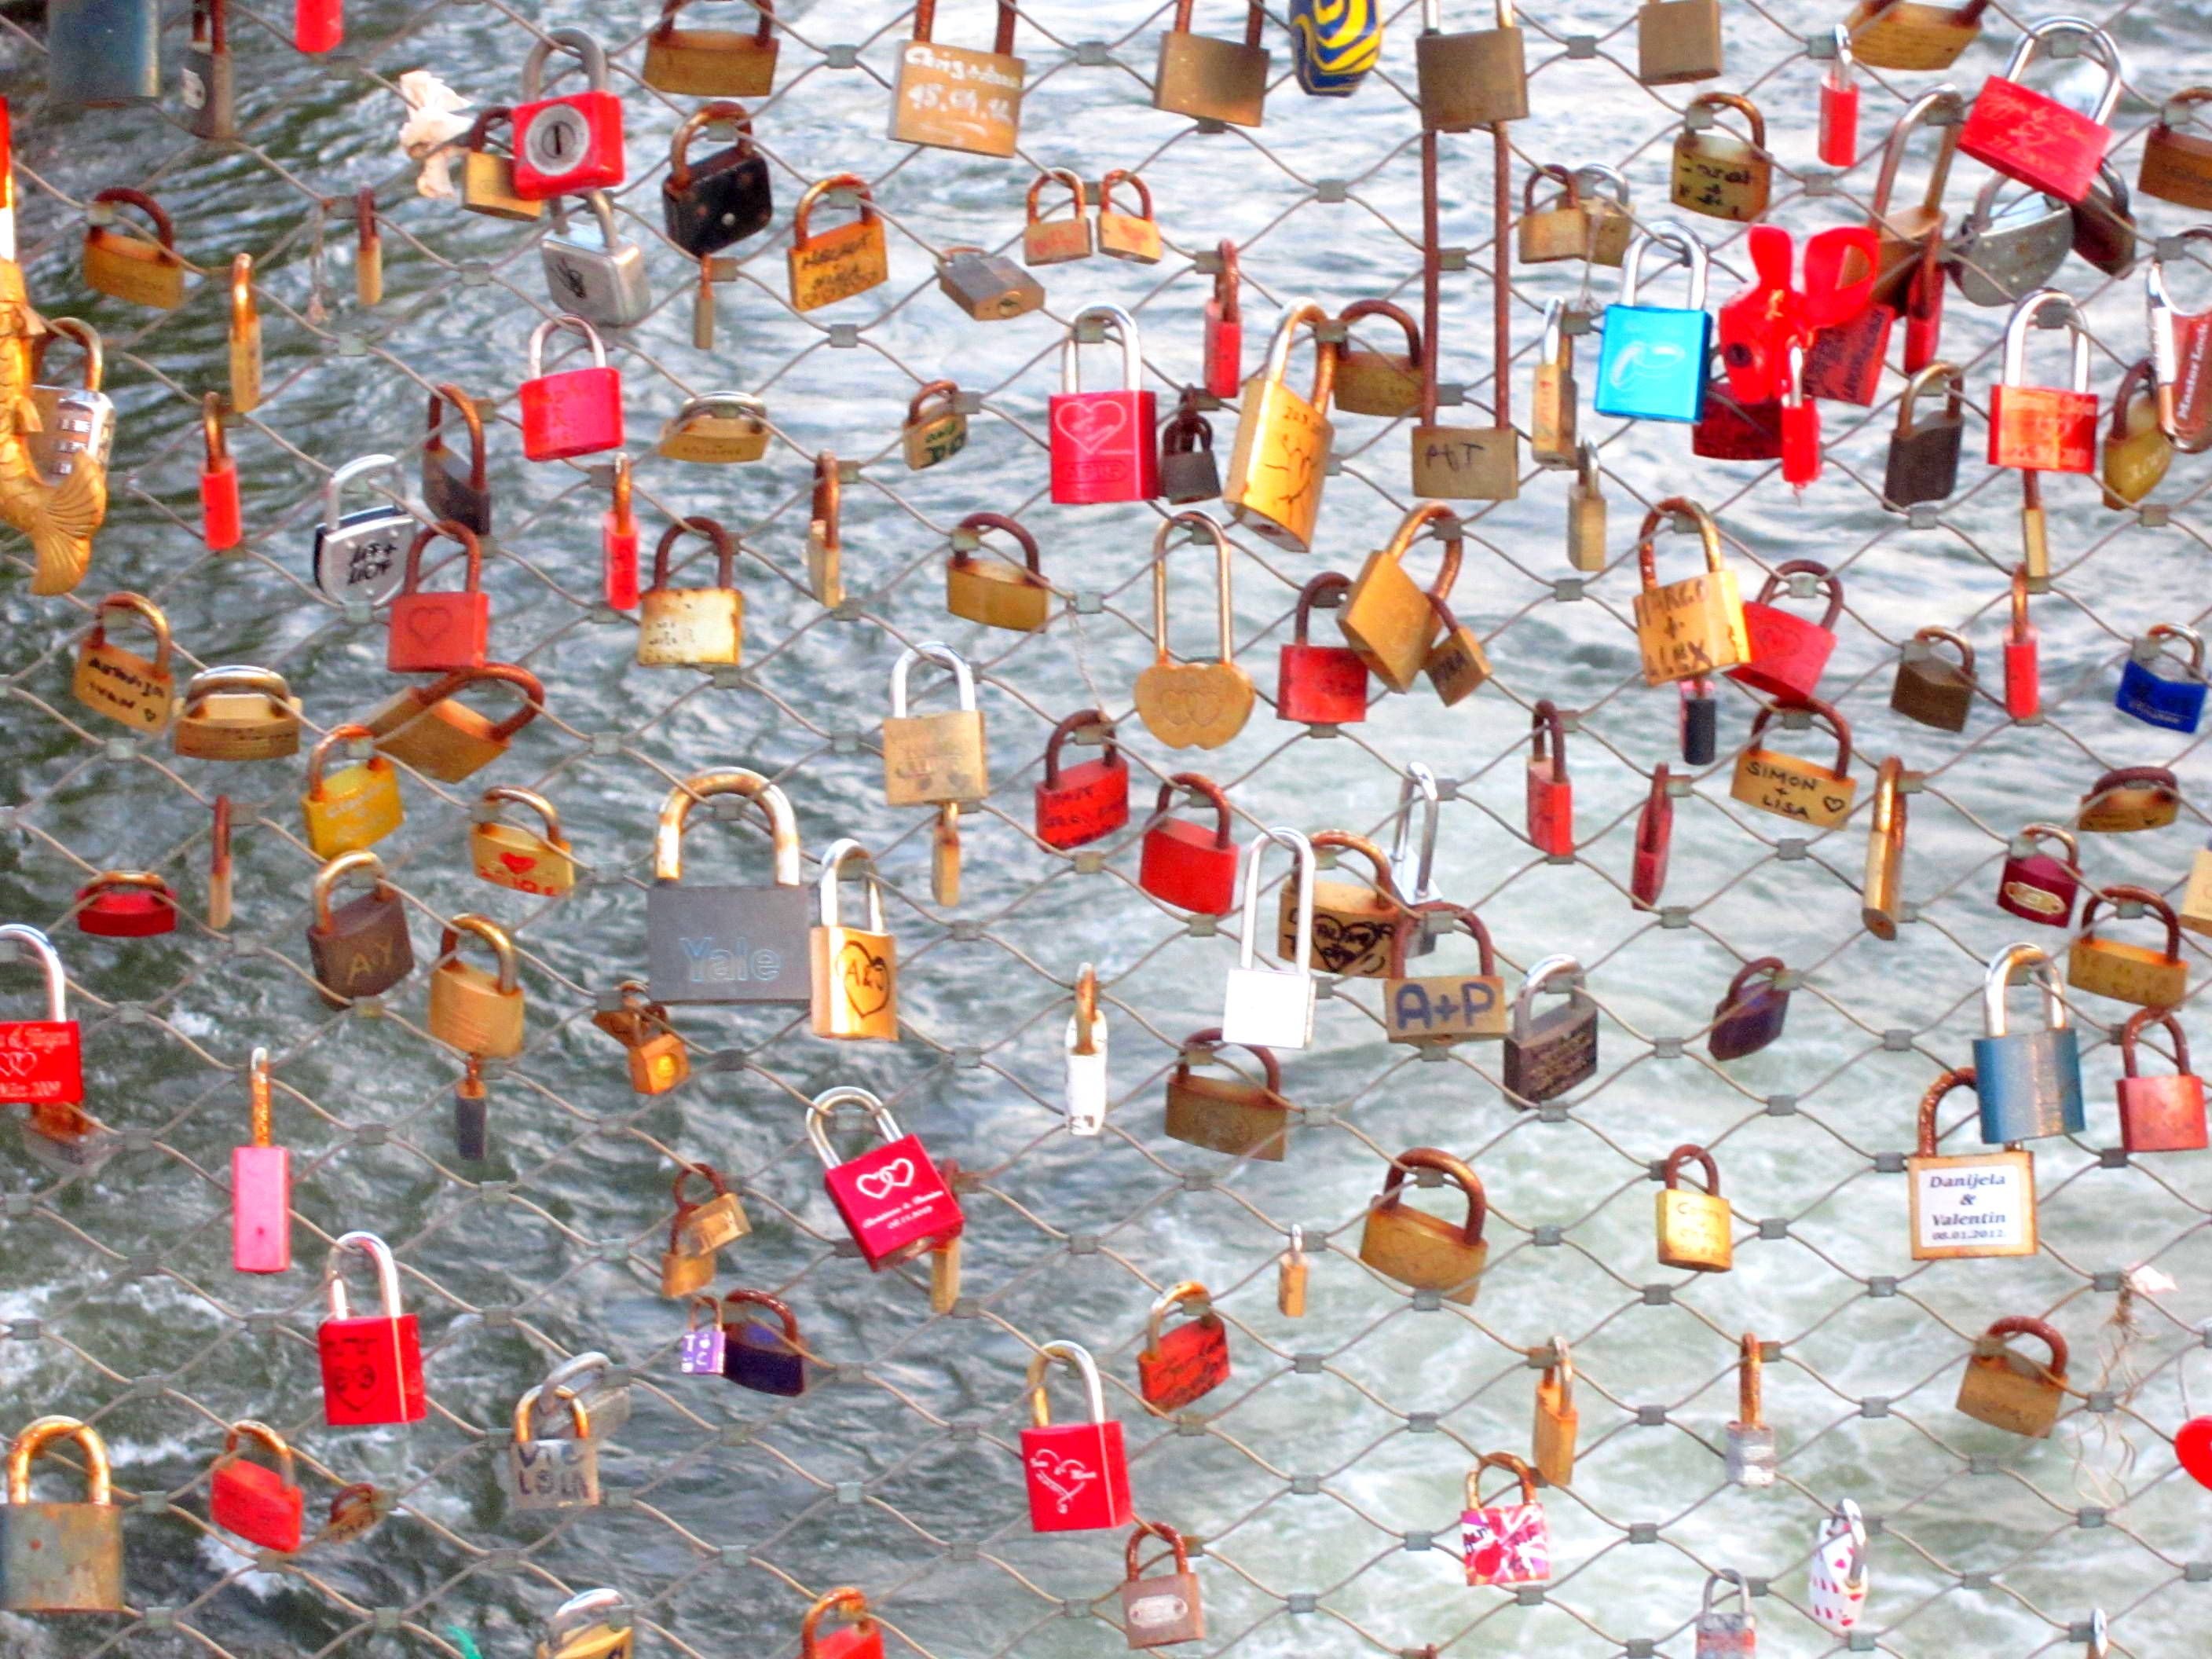 Locks on a bridge in Graz, Austria